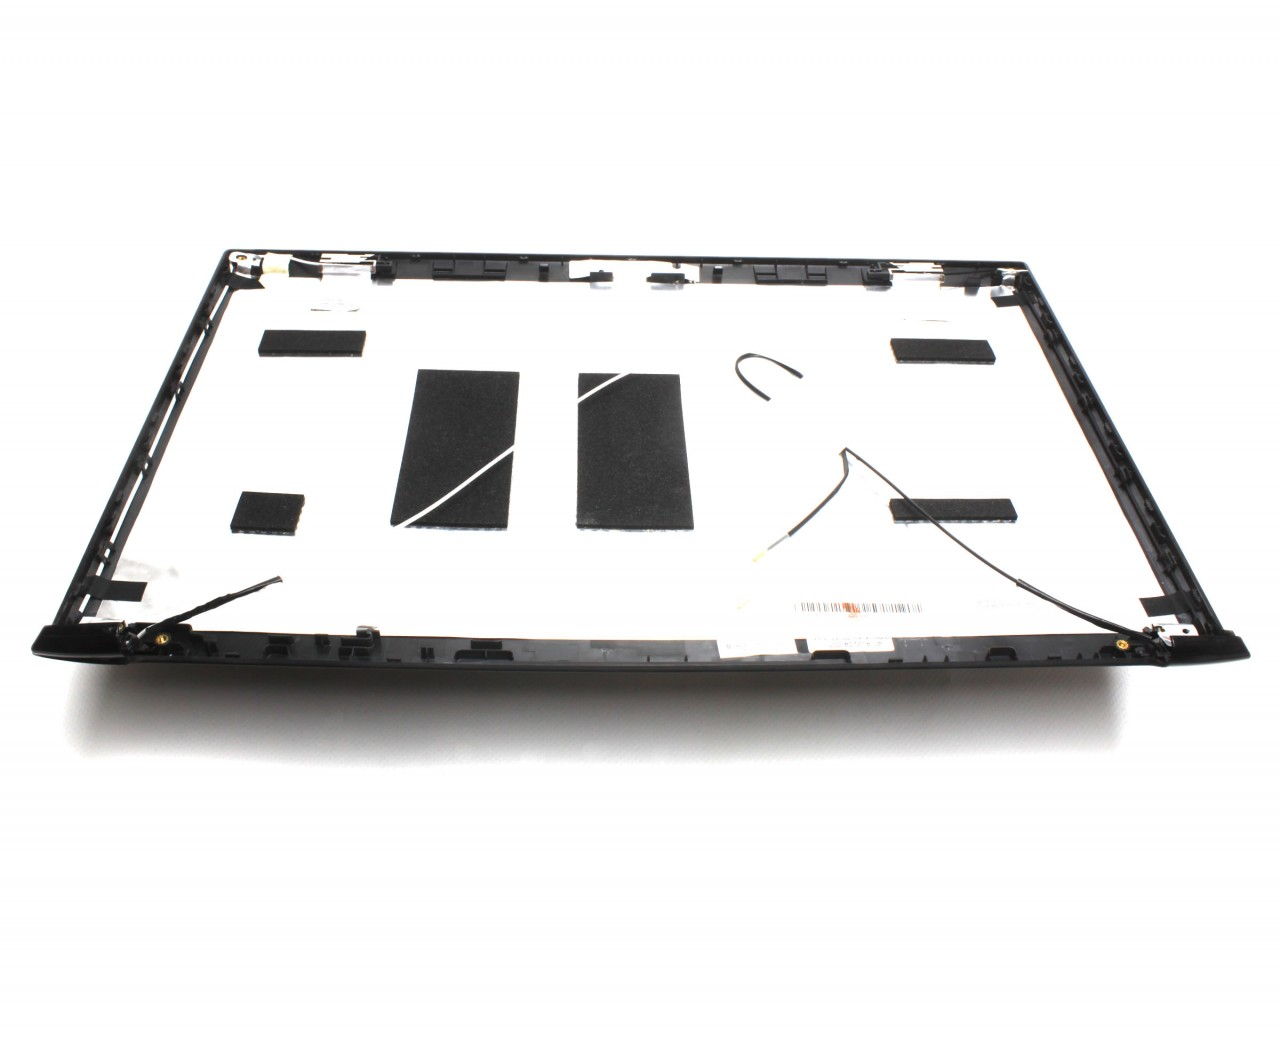 Capac Display BackCover IBM Lenovo B560A Carcasa Display imagine powerlaptop.ro 2021